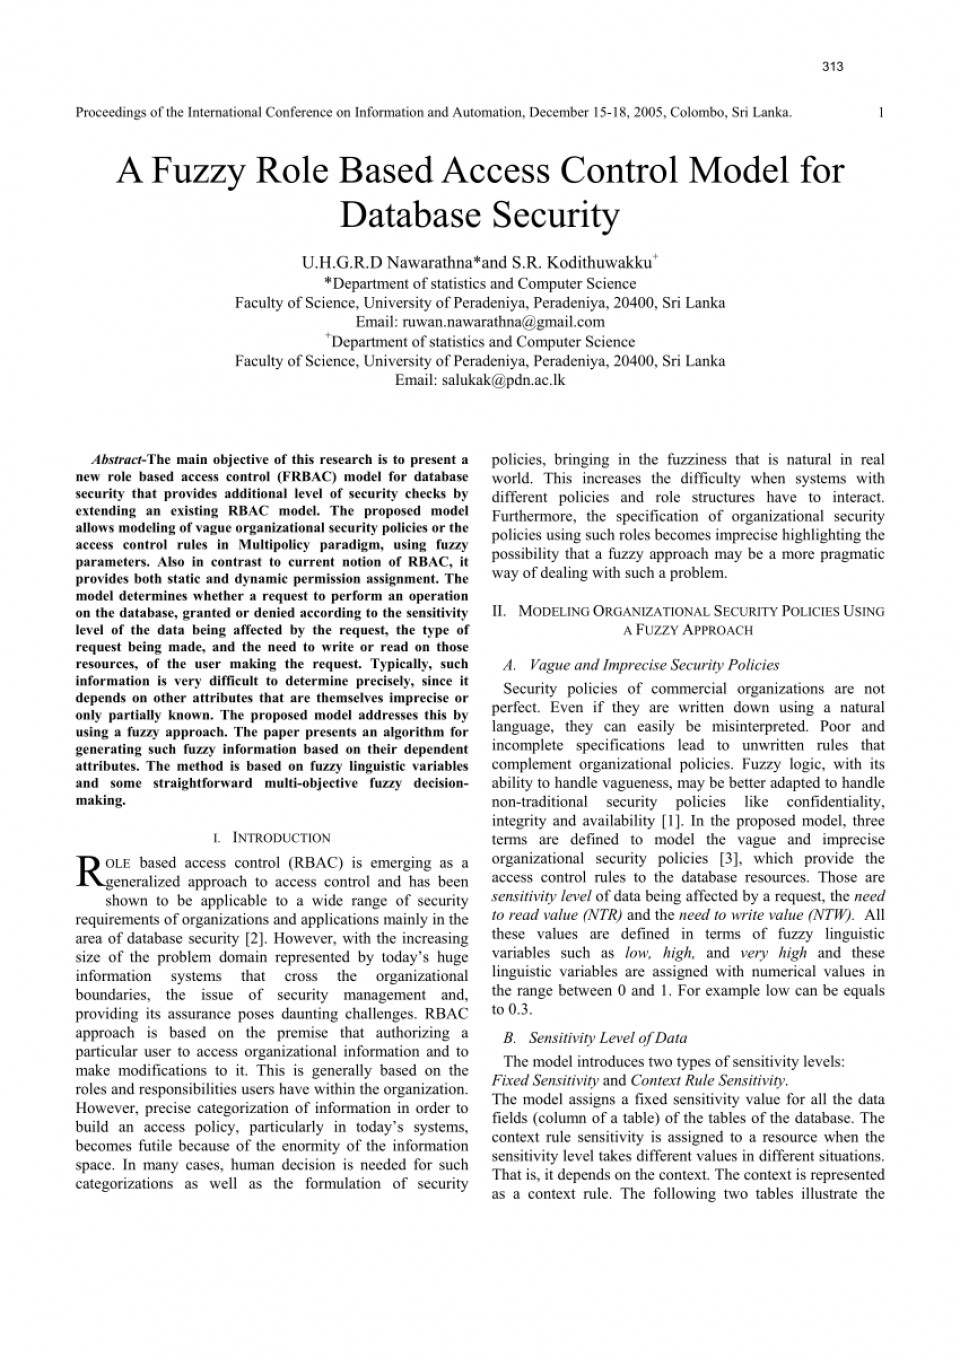 007 Database Security Research Paper Abstract Fascinating 960